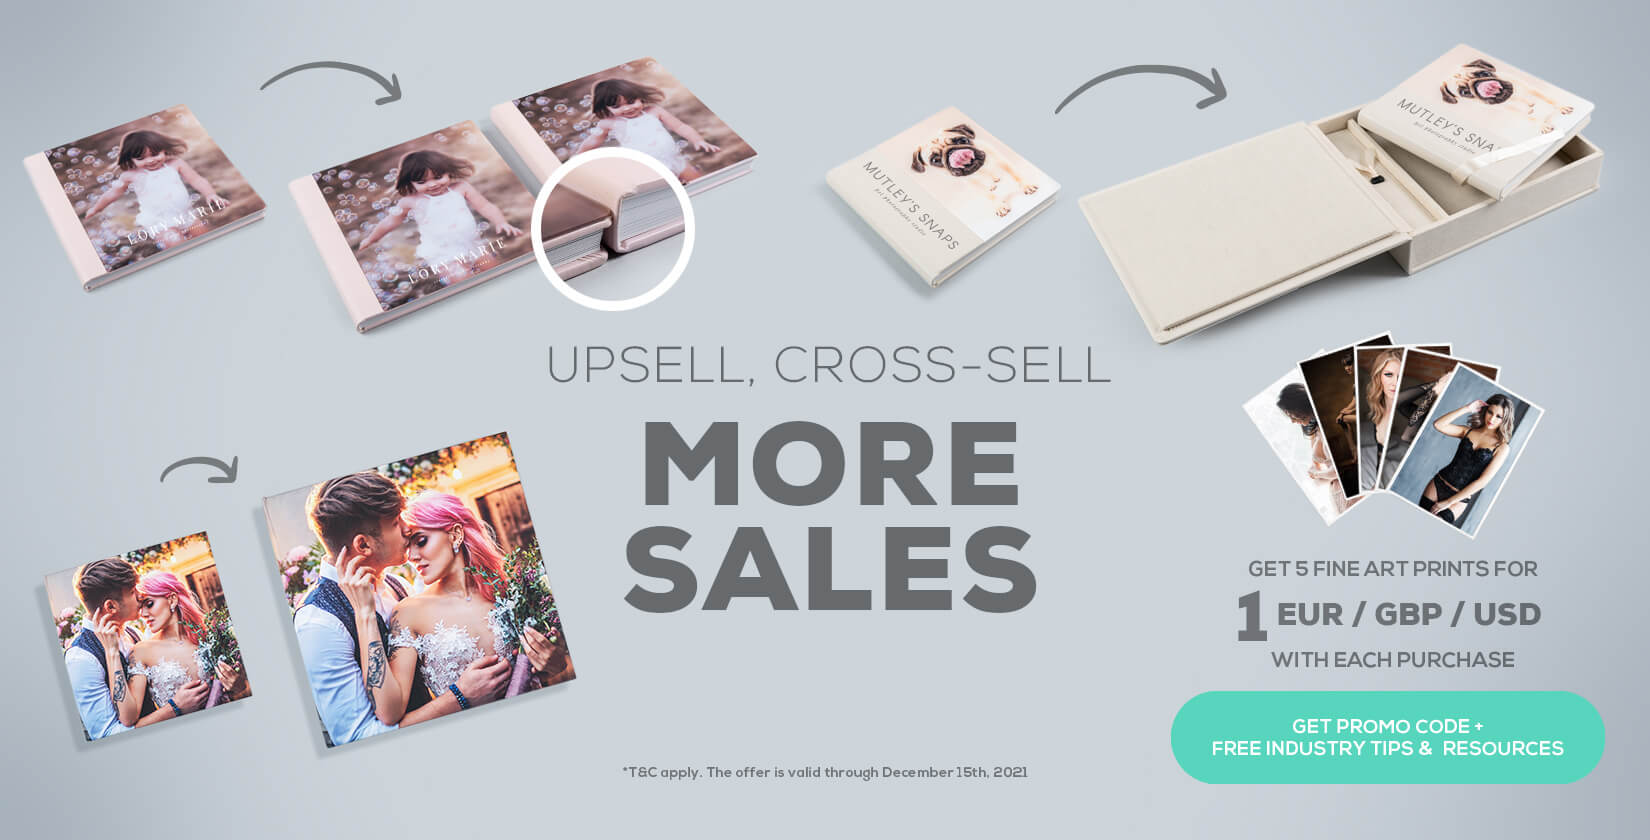 upsell photo products with nPhoto